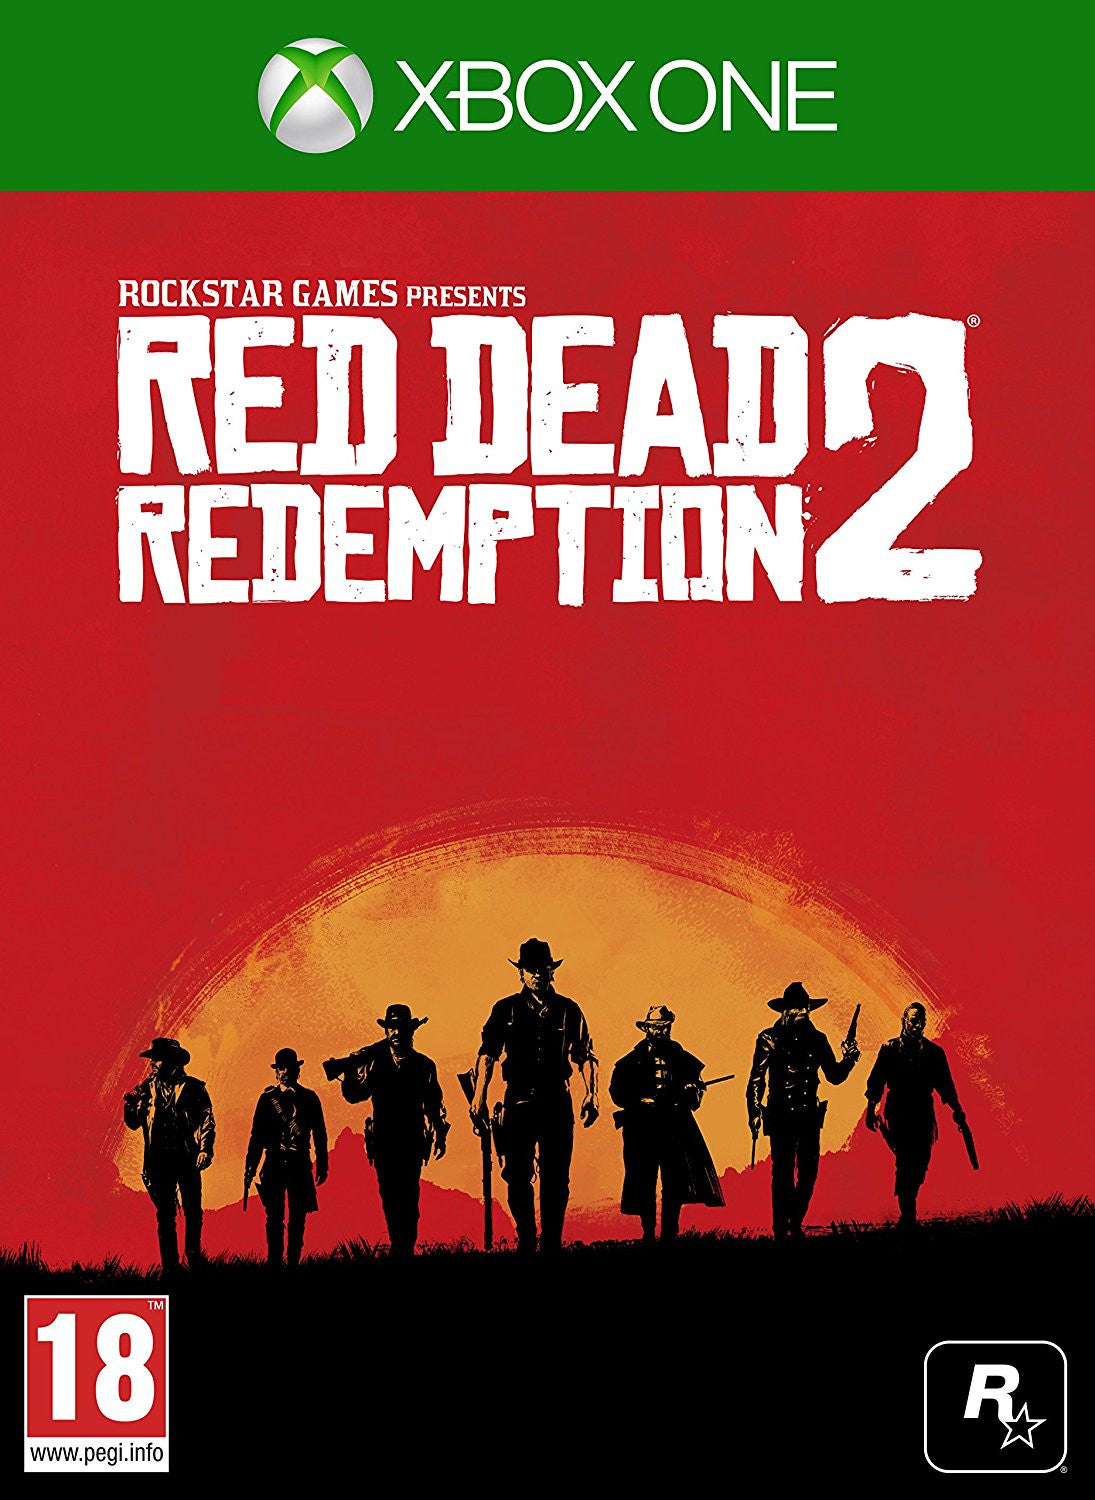 Red Dead Redemption 2 - Xbox One - Video Games by Take 2 The Chelsea Gamer